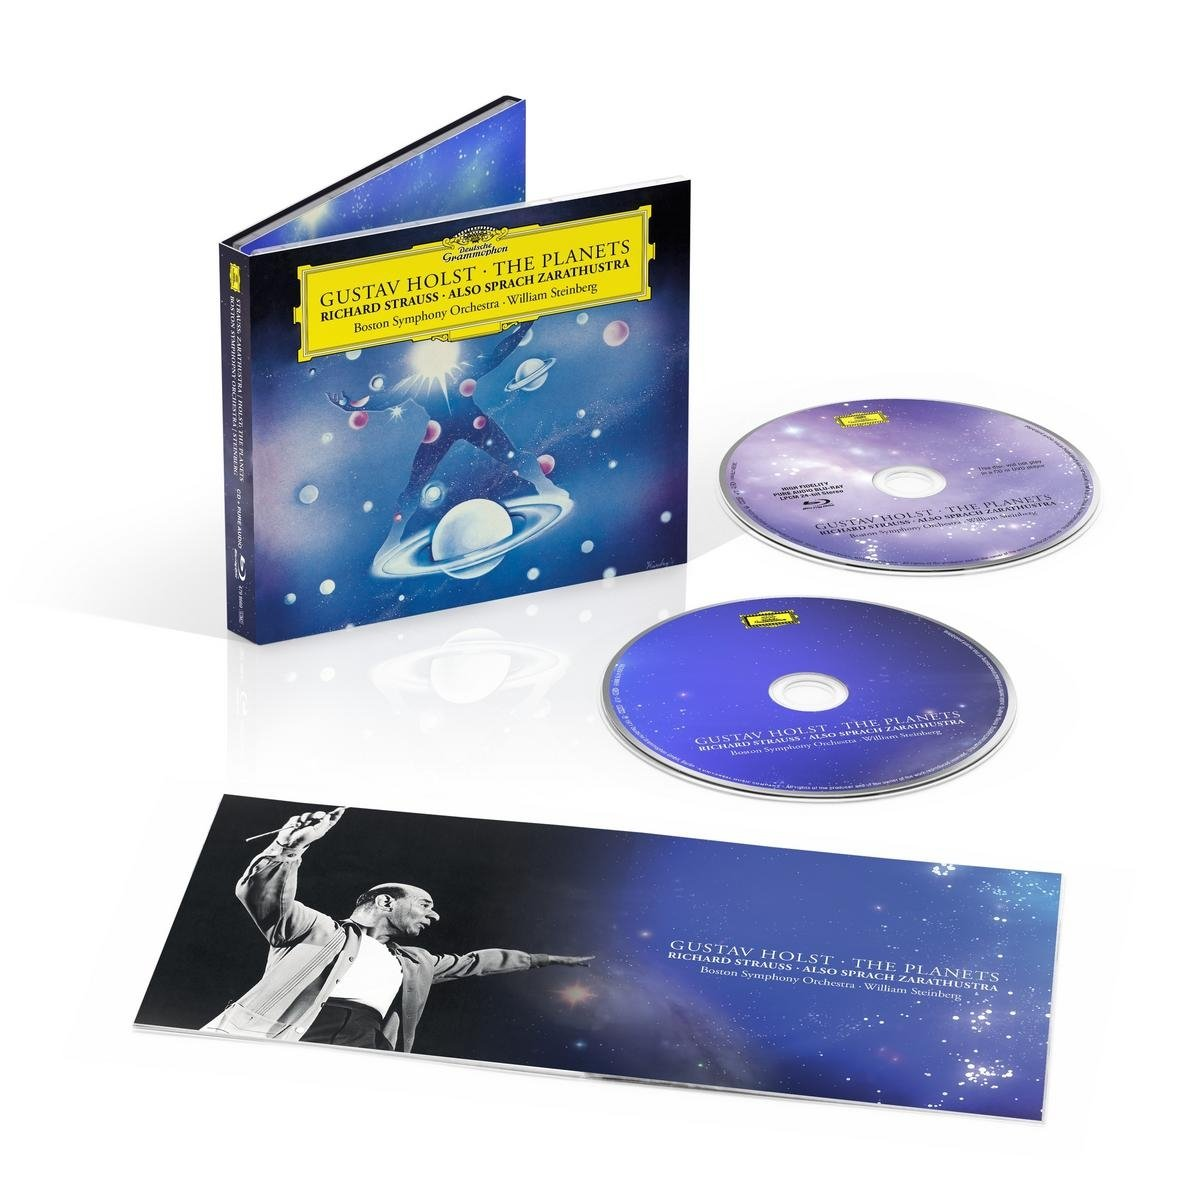 CD : WILLIAM STEINBERG/BOSTON SYMPHONY ORCHESTRA - Planets / Strauss,r: Also Sprach Zarathustra (With Blu-Ray Audio, Digipack Packaging, 2PC)